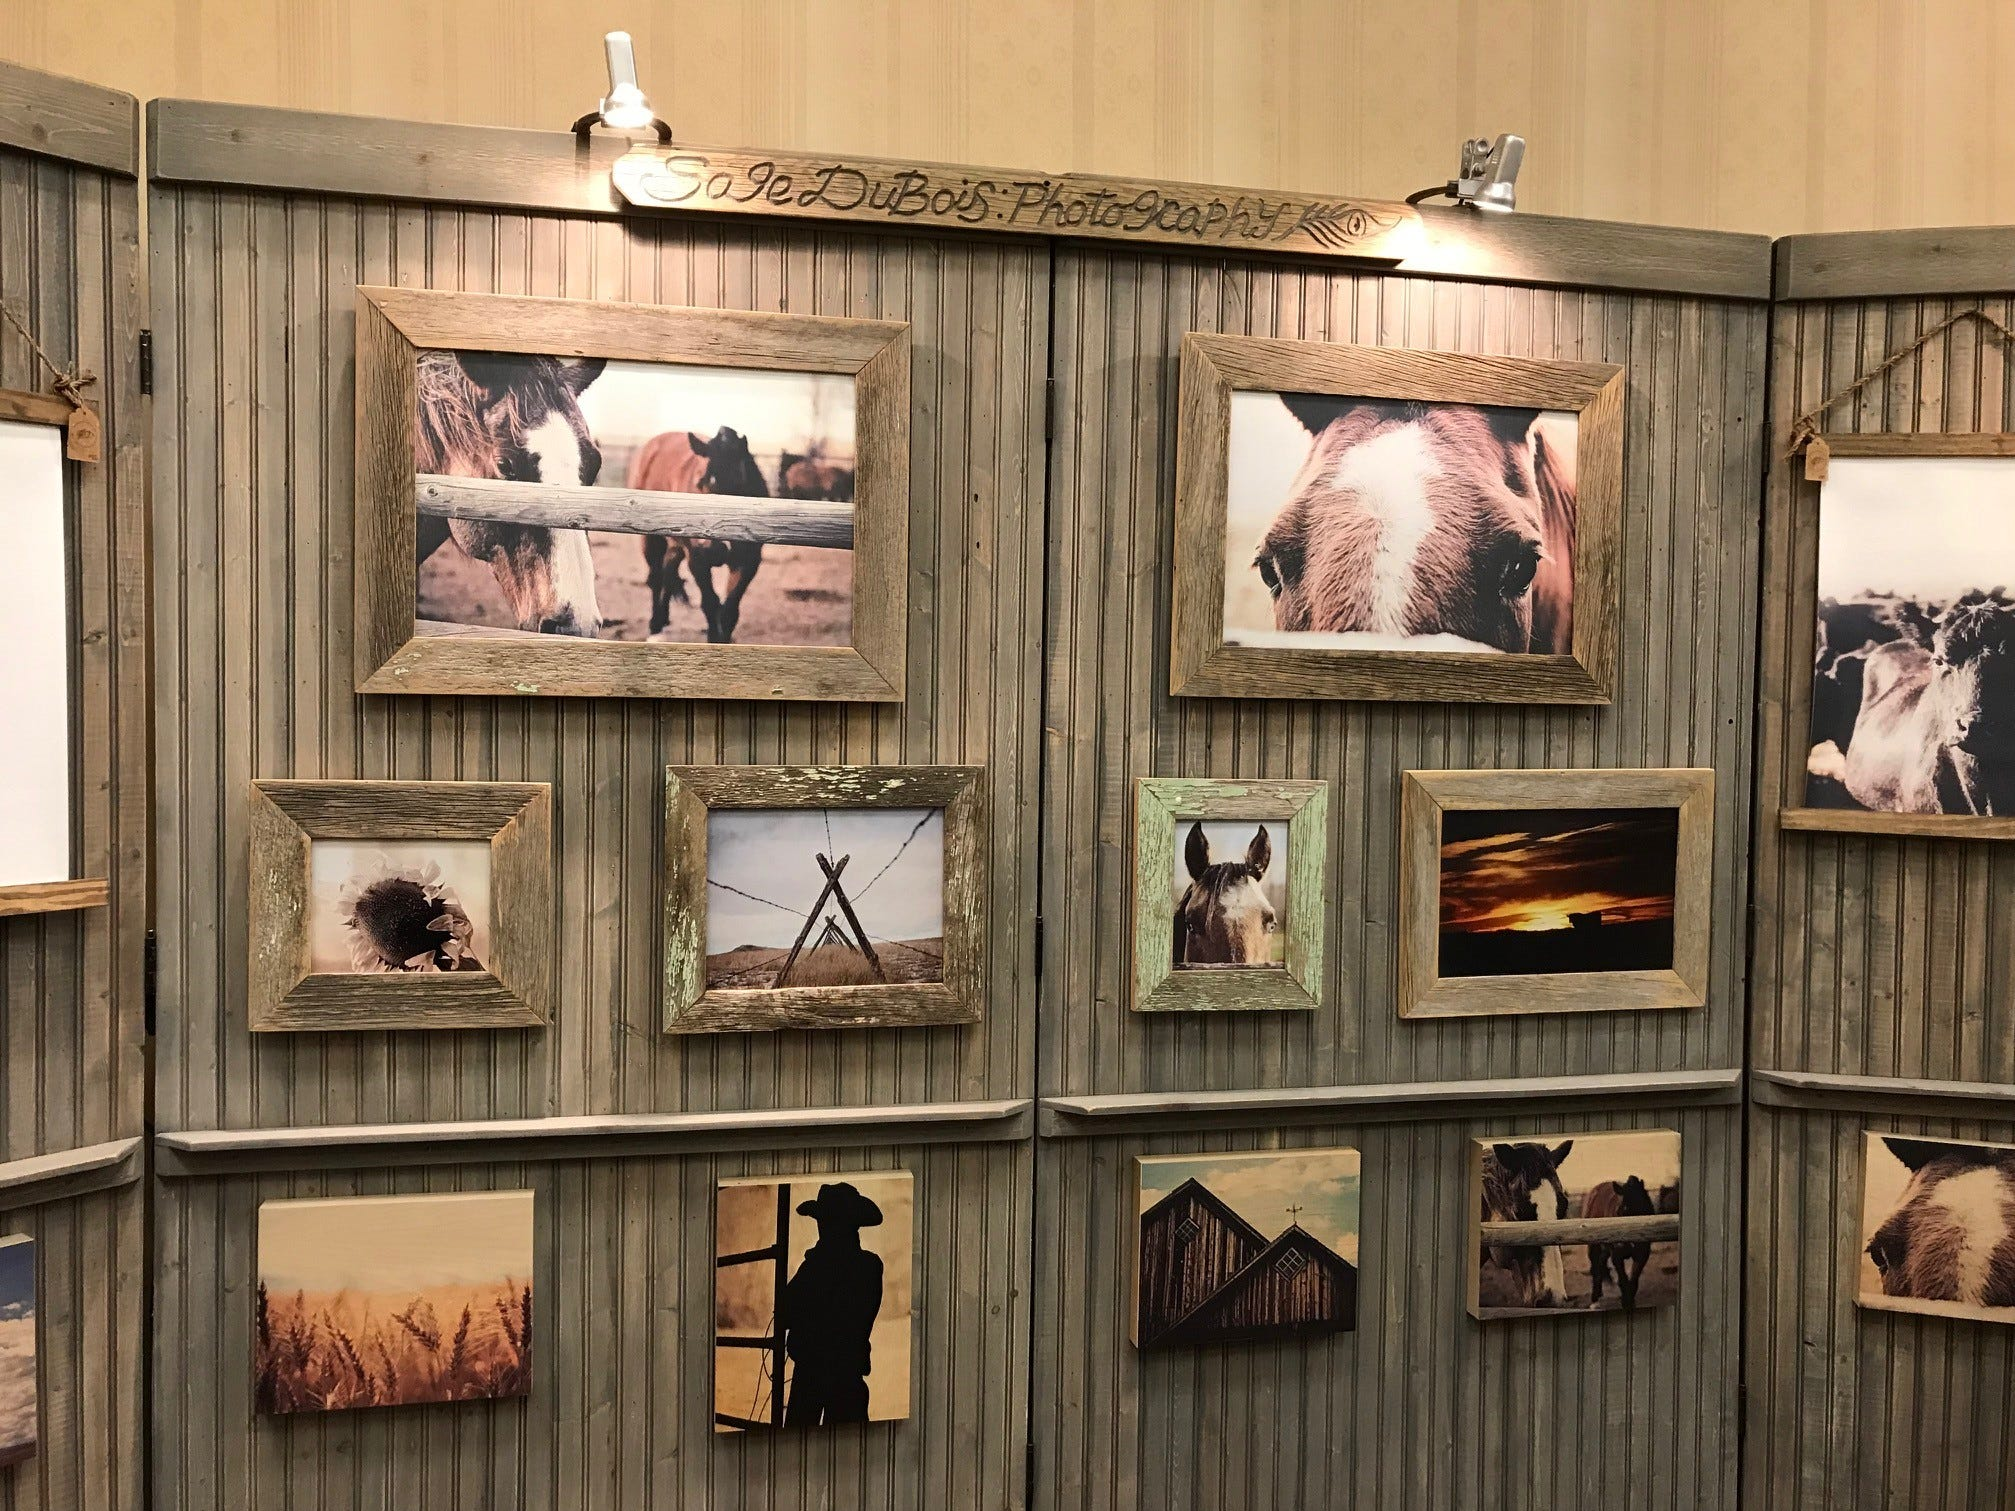 Sage DuBois's photography has a dreamy appeal. It's on display during Western Art Week at the Jay Contway Show at the Hilton Garden Inn.